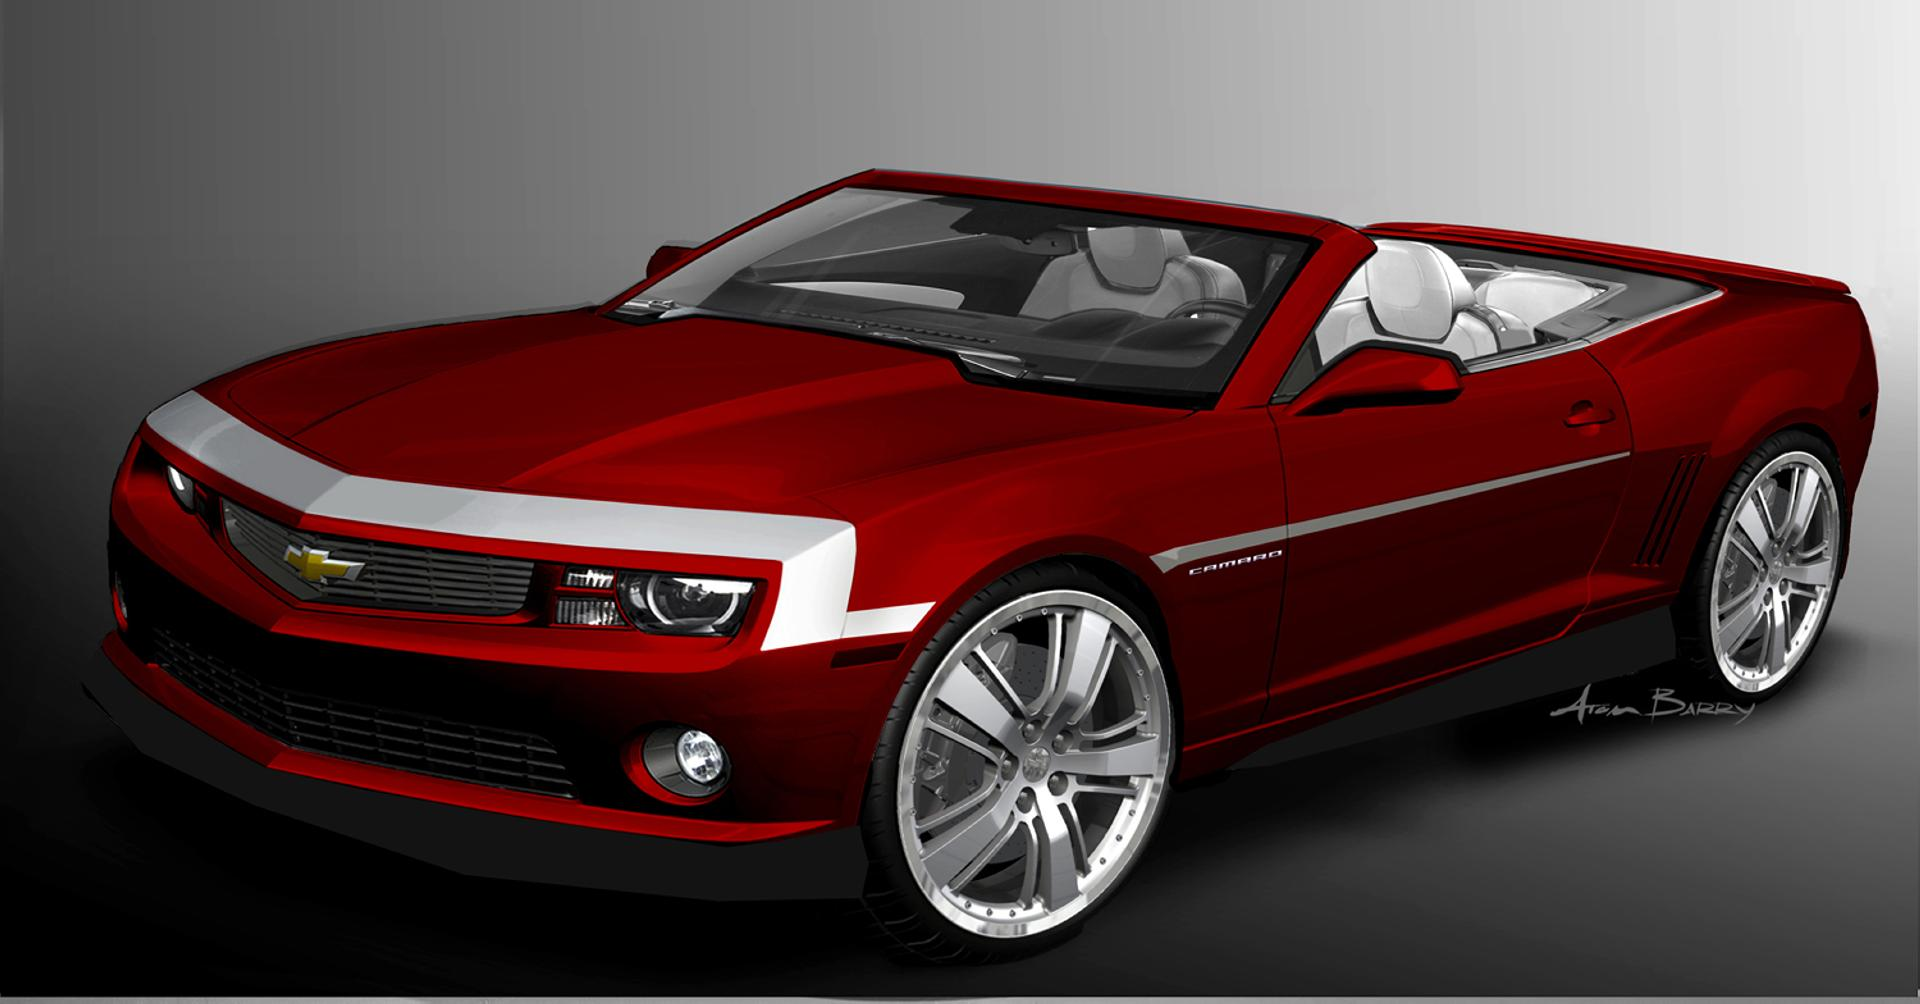 2012 Chevrolet Camaro Red Zone Concept Image Photo 1 Of 3